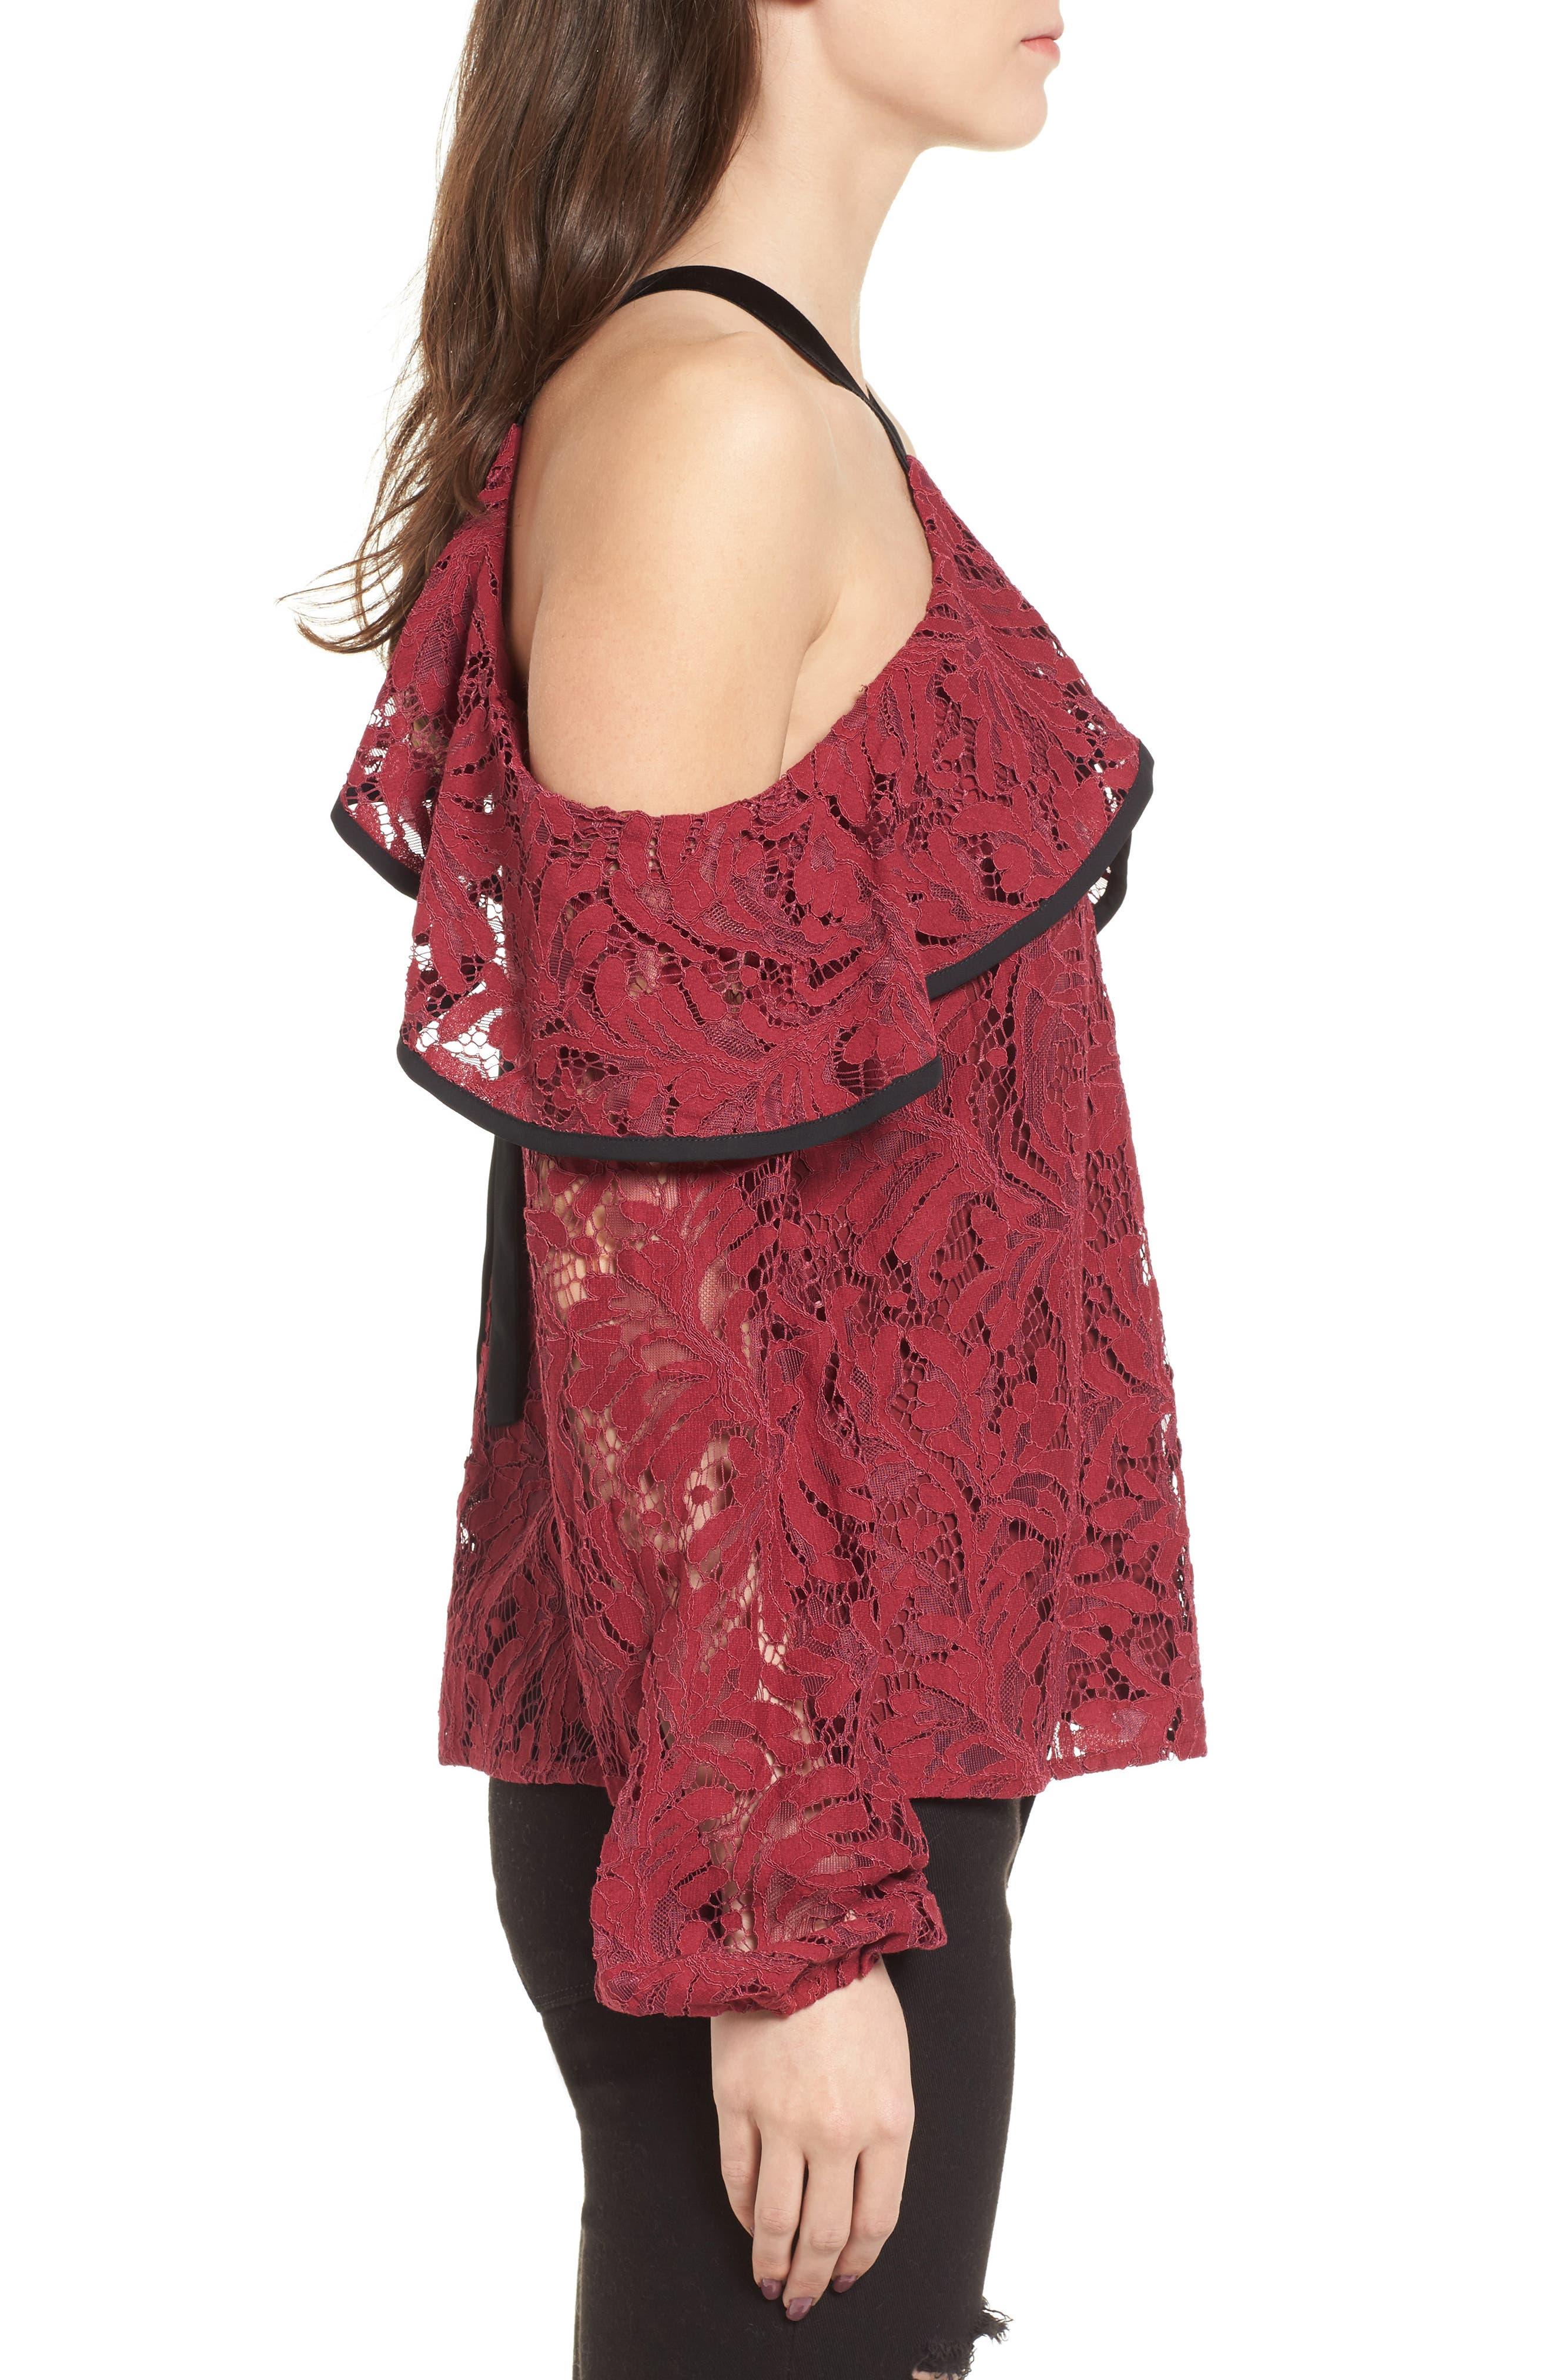 Helena Lace Top,                             Alternate thumbnail 3, color,                             Burgundy